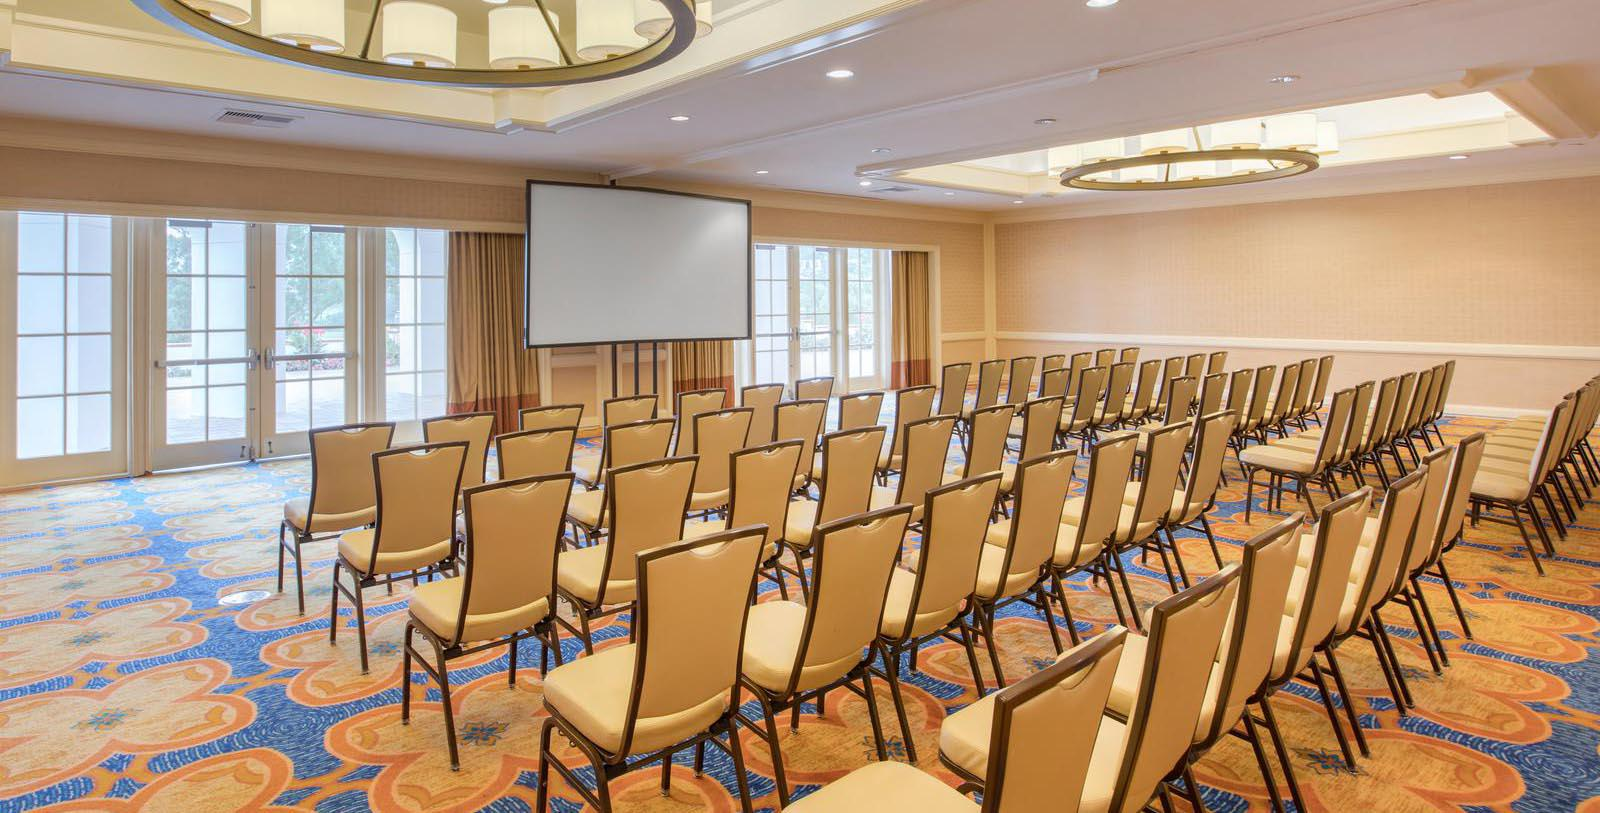 Image of Meeting Space Classroom, Omni La Costa Resort & Spa, Carlsbad, California, 1965, Member of Historic Hotels of America, Special Occasions